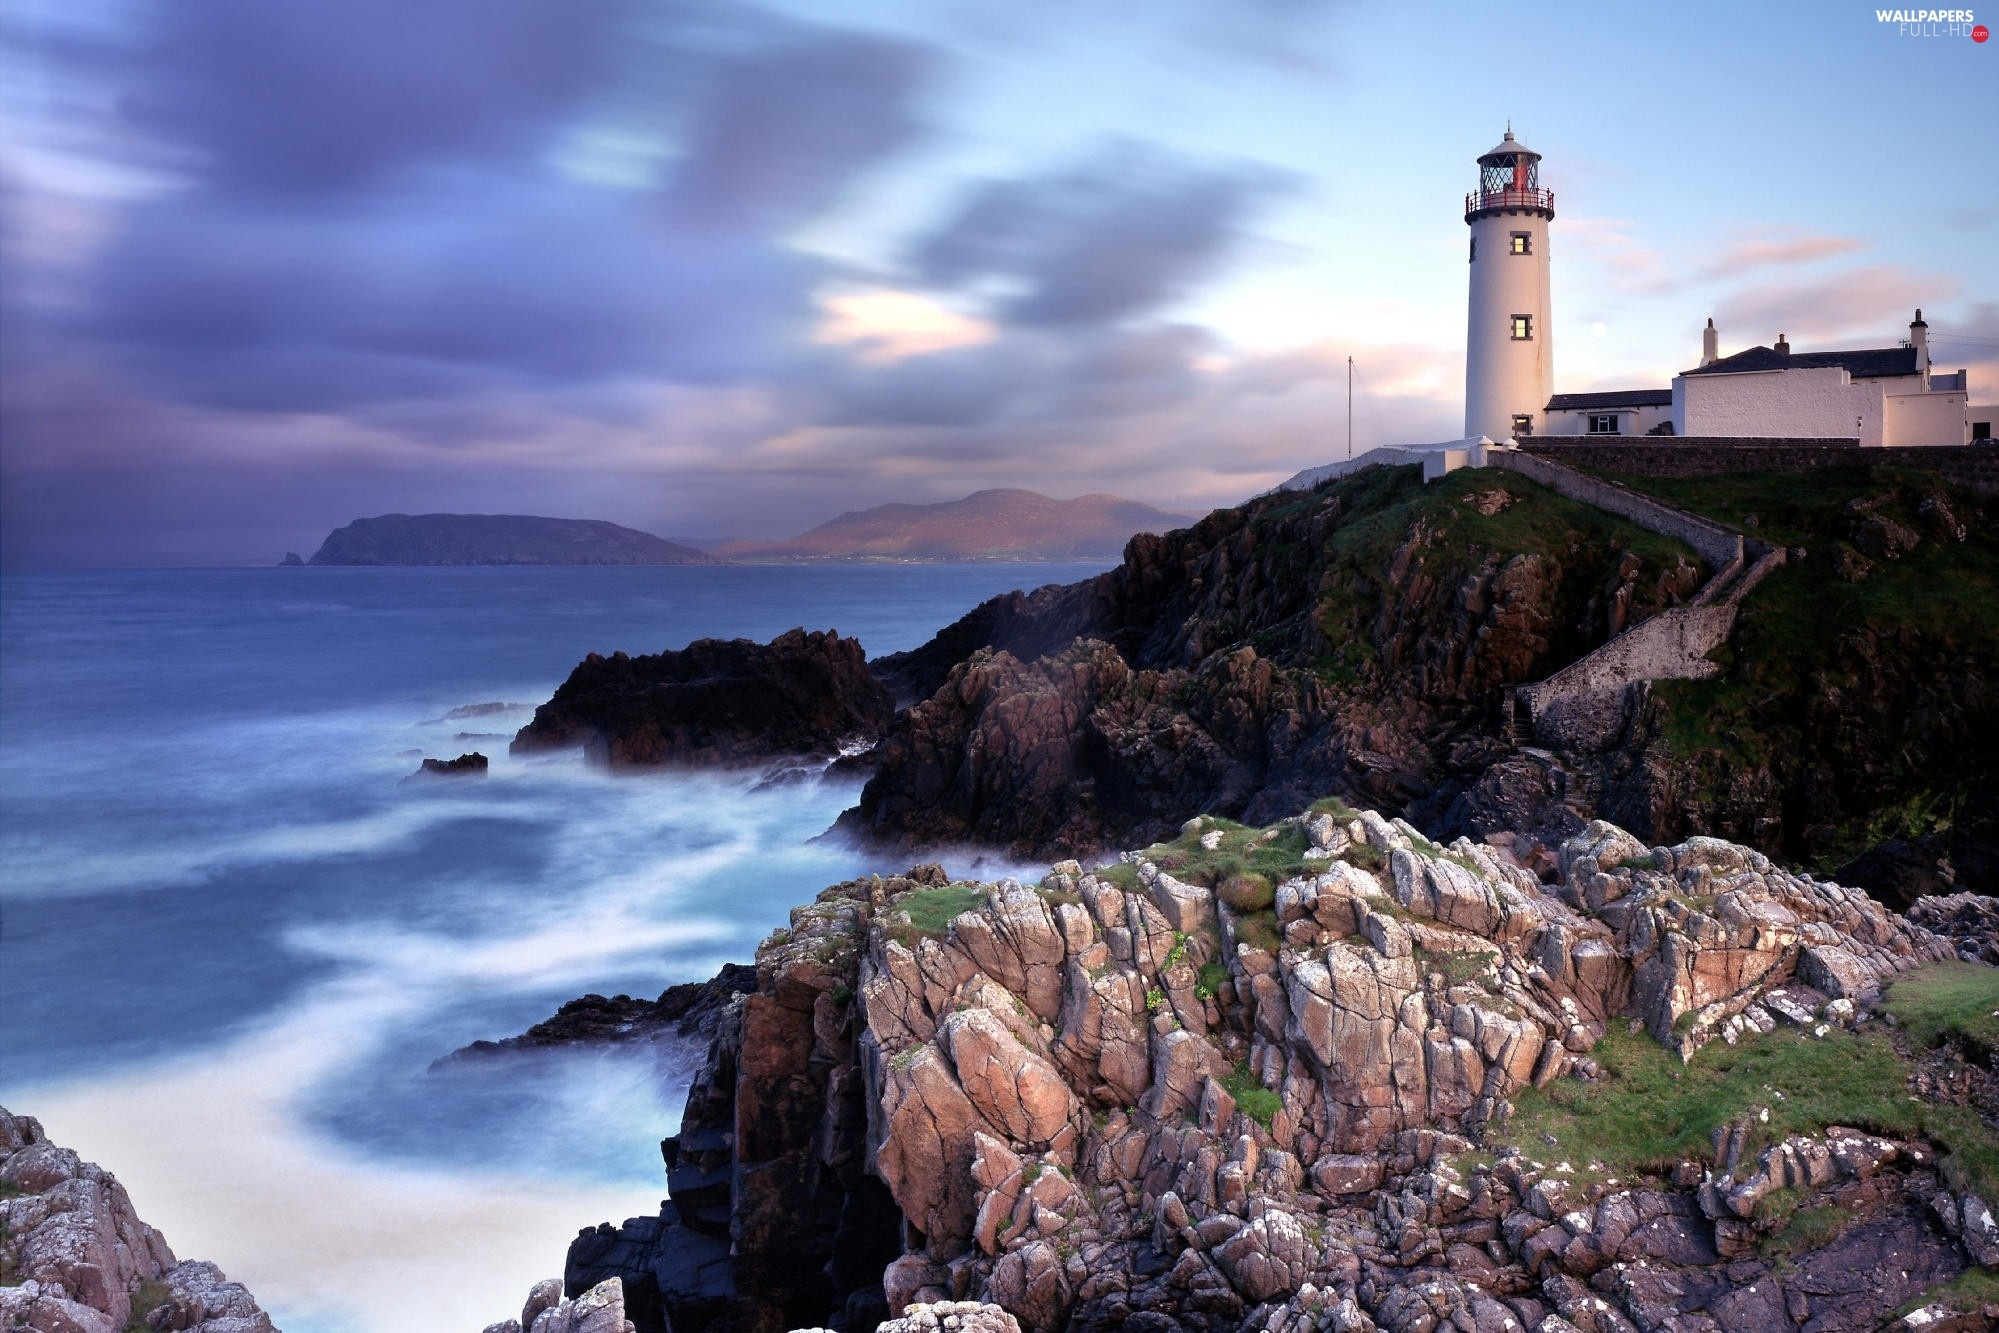 sea, rocks, Lighthouse, Ireland, maritime